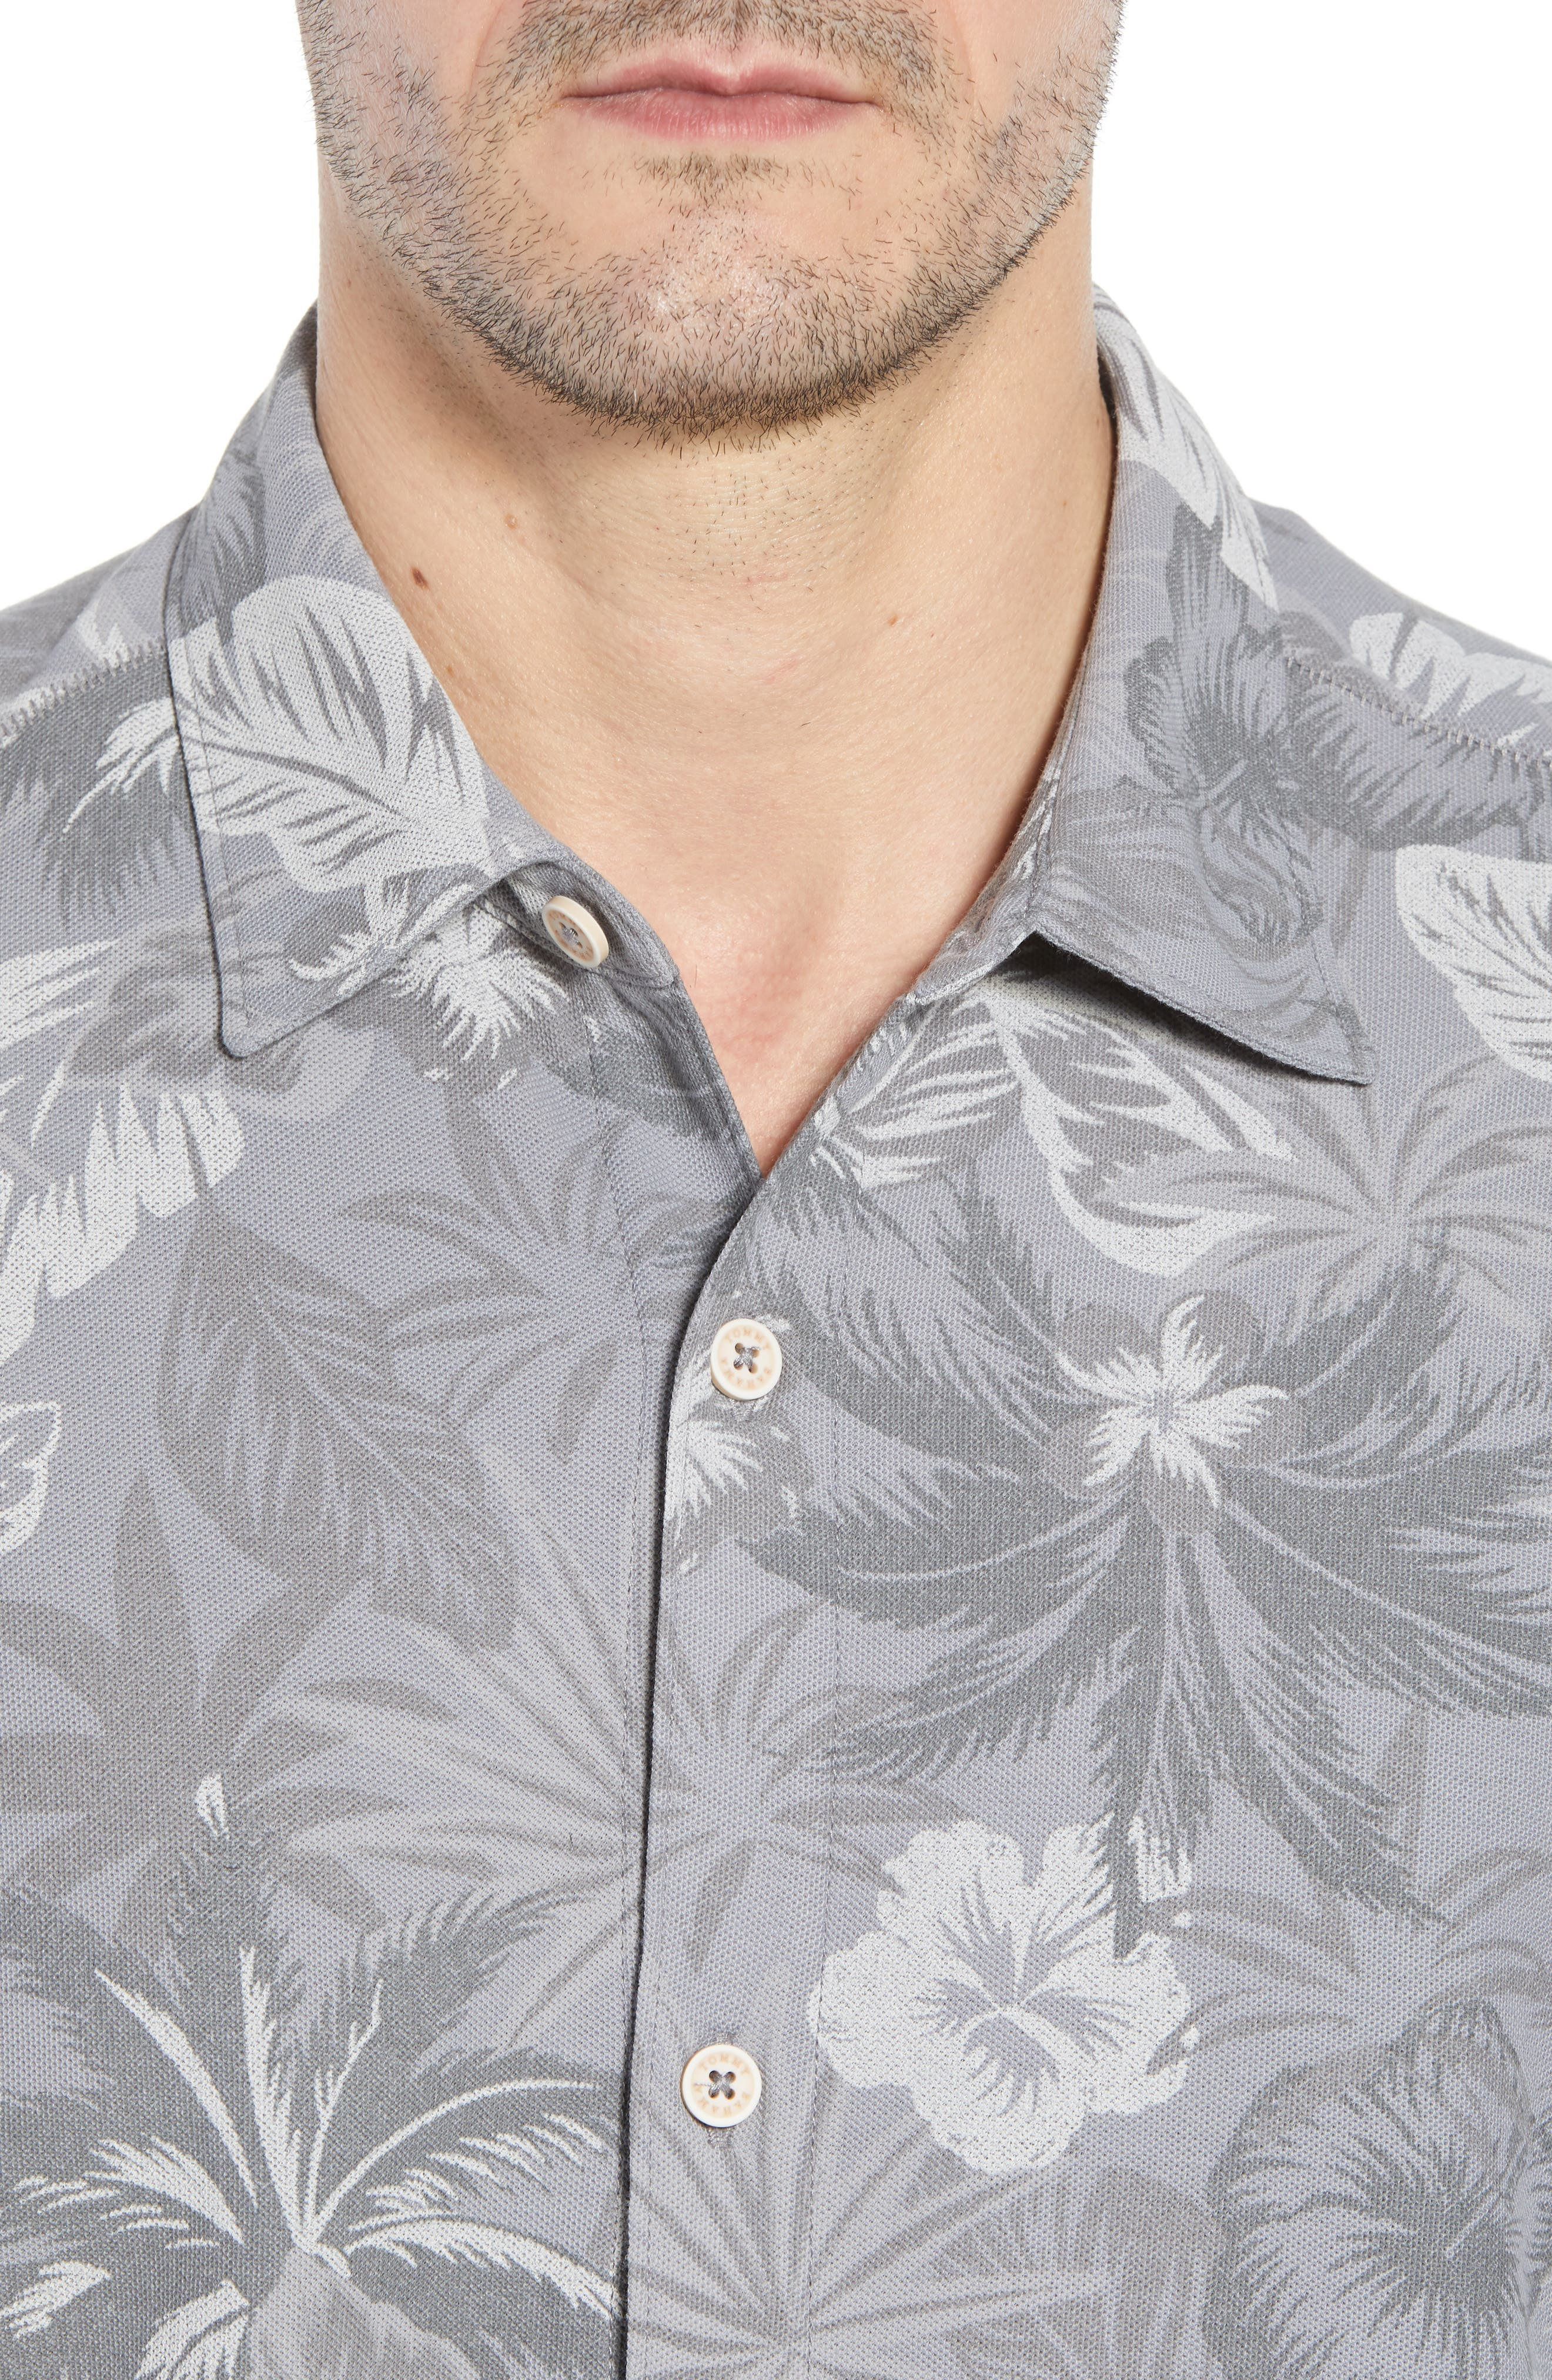 Fuego Floral Camp Shirt,                             Alternate thumbnail 4, color,                             050